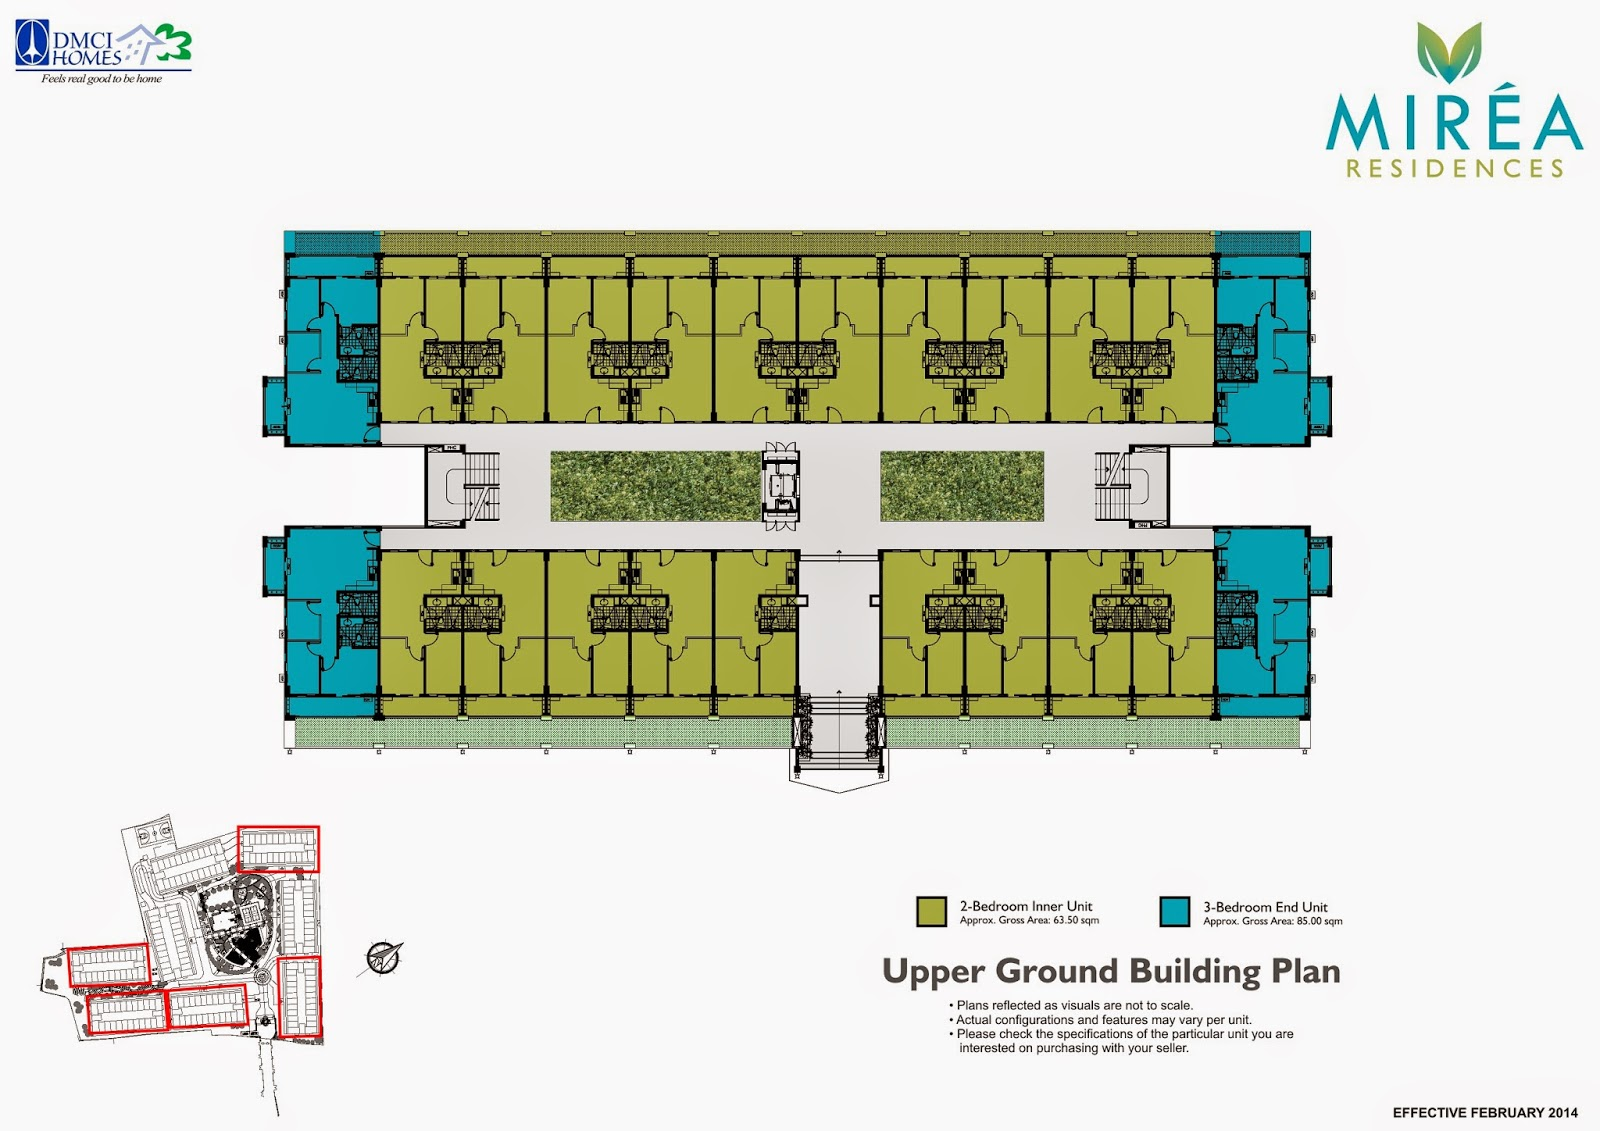 Mirea Residences Garden Atrium Ground Floor Plan